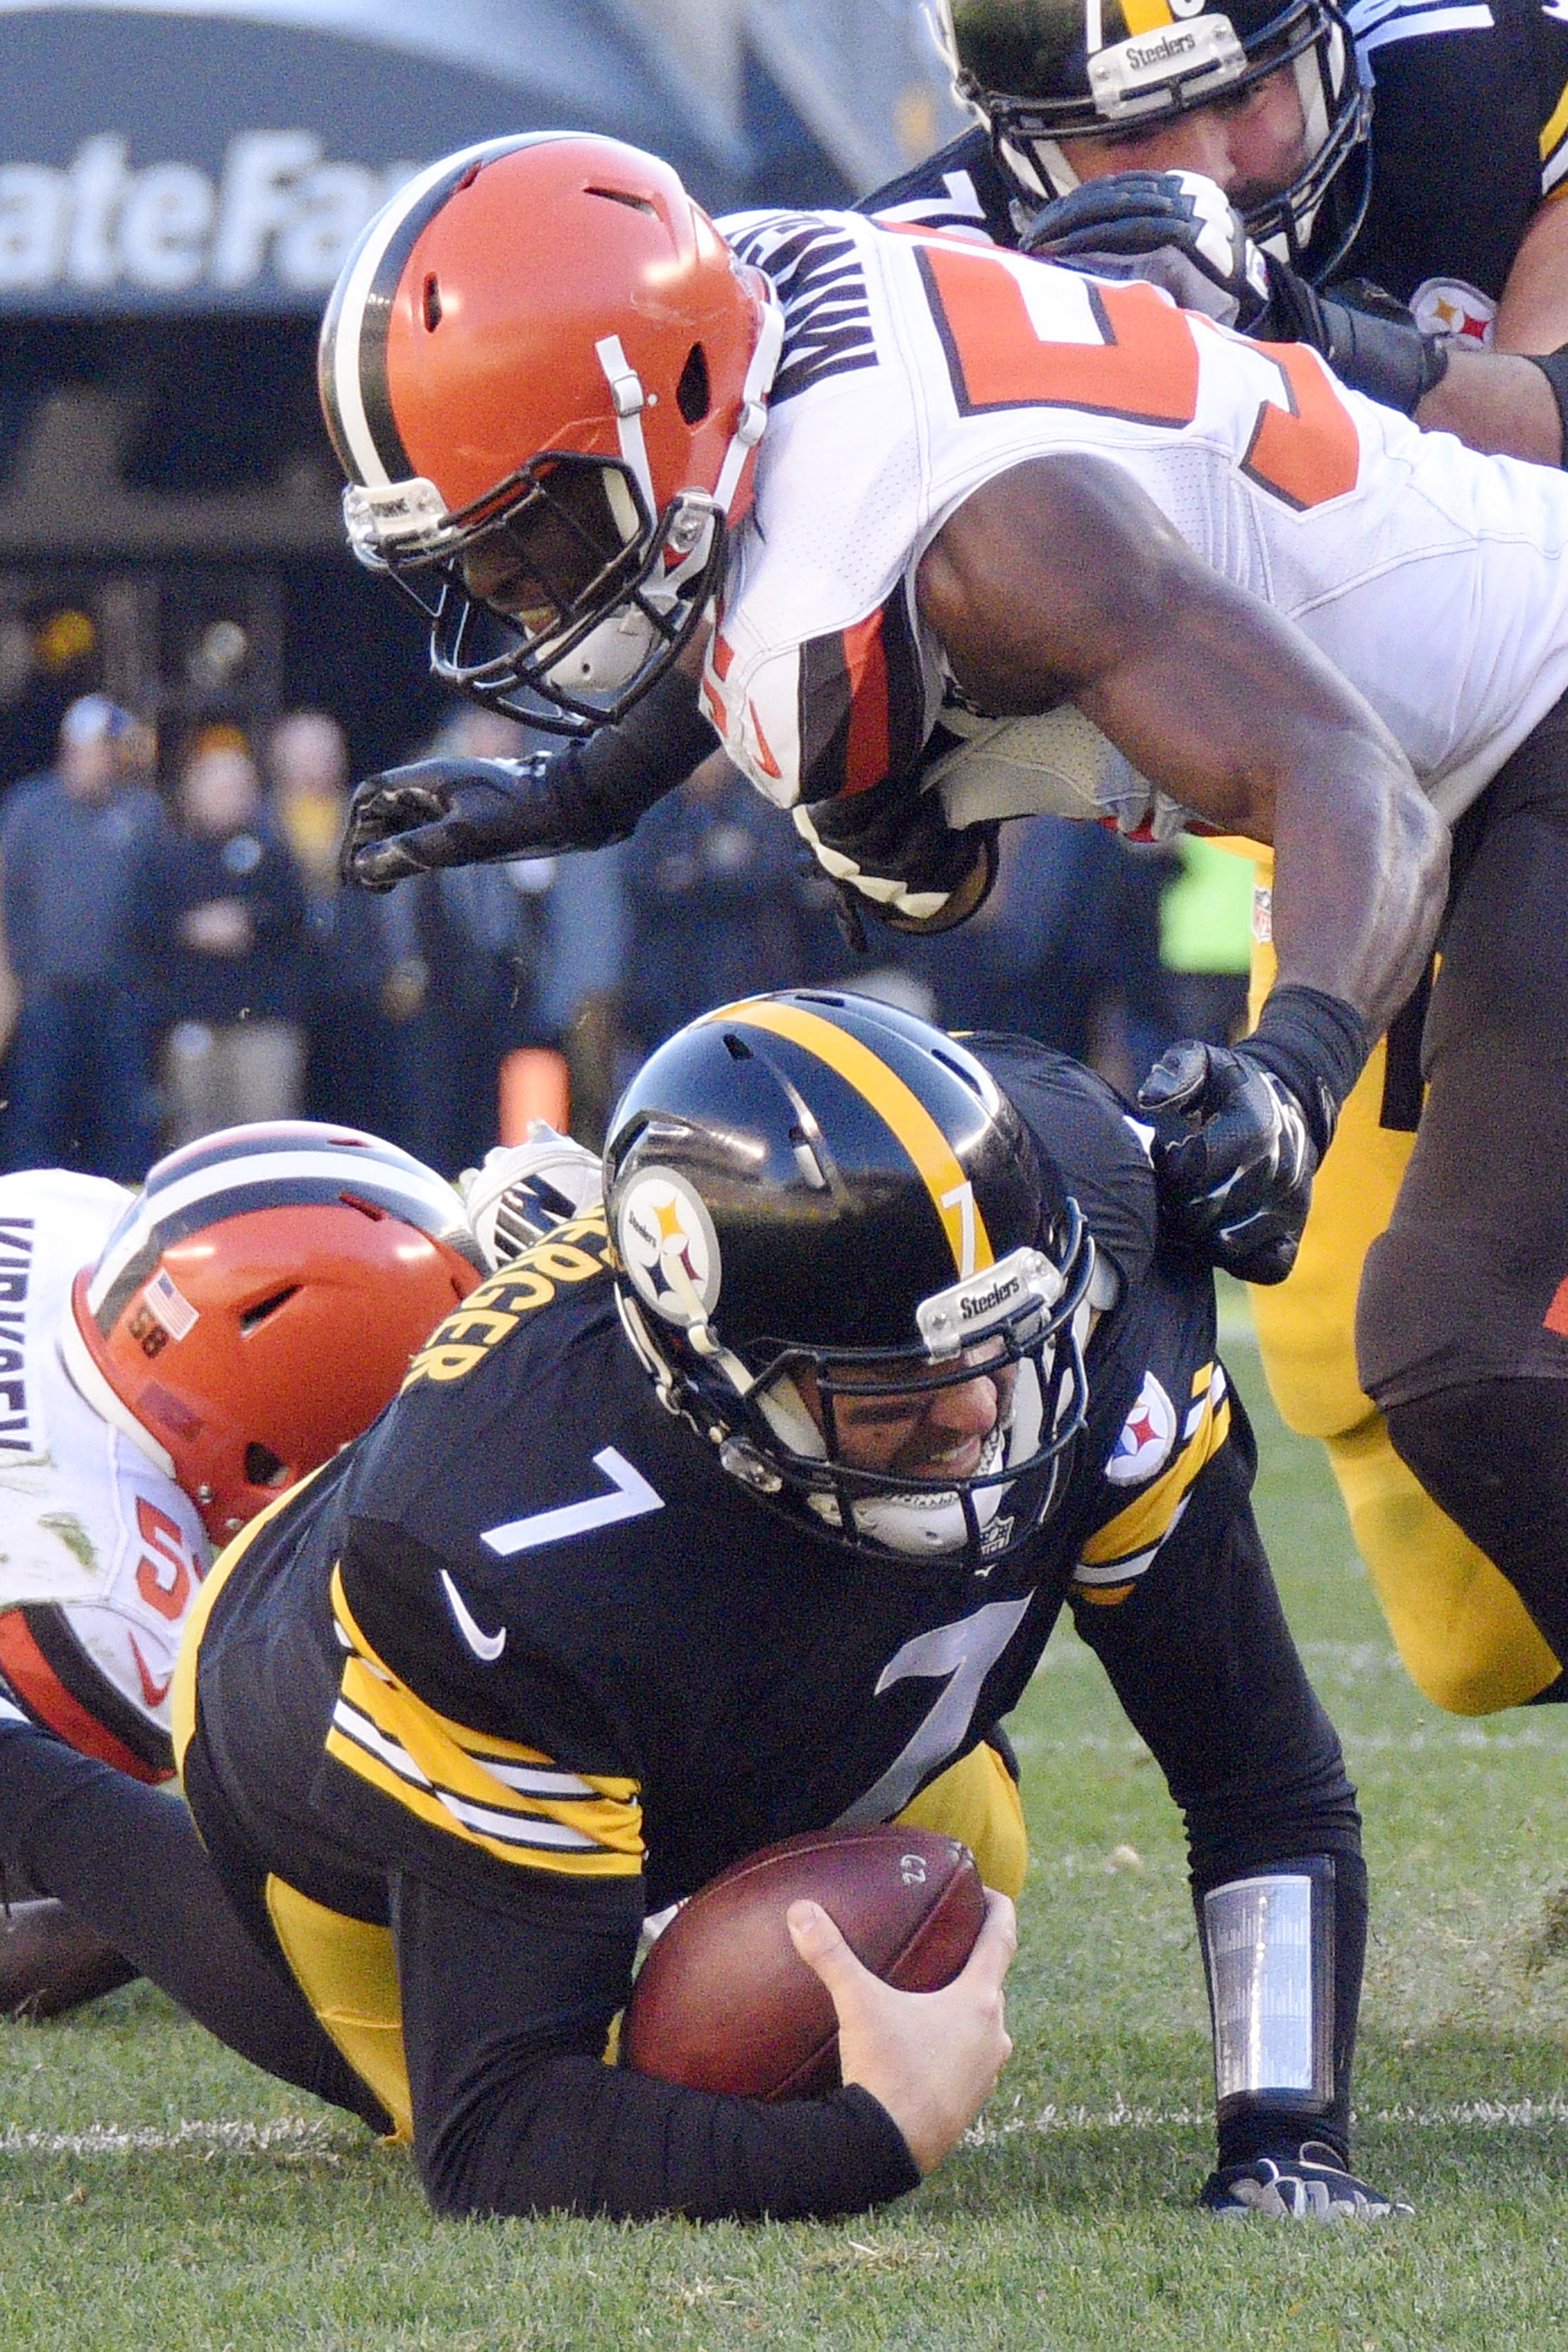 Pittsburgh Steelers quarterback Ben Roethlisberger (7) is tackled by Cleveland Browns inside linebacker Chris Kirksey (58) and outside linebacker Barkevious Mingo (51) as he scrambles in the second quarter of an NFL football game, Sunday, Nov. 15, 2015, i